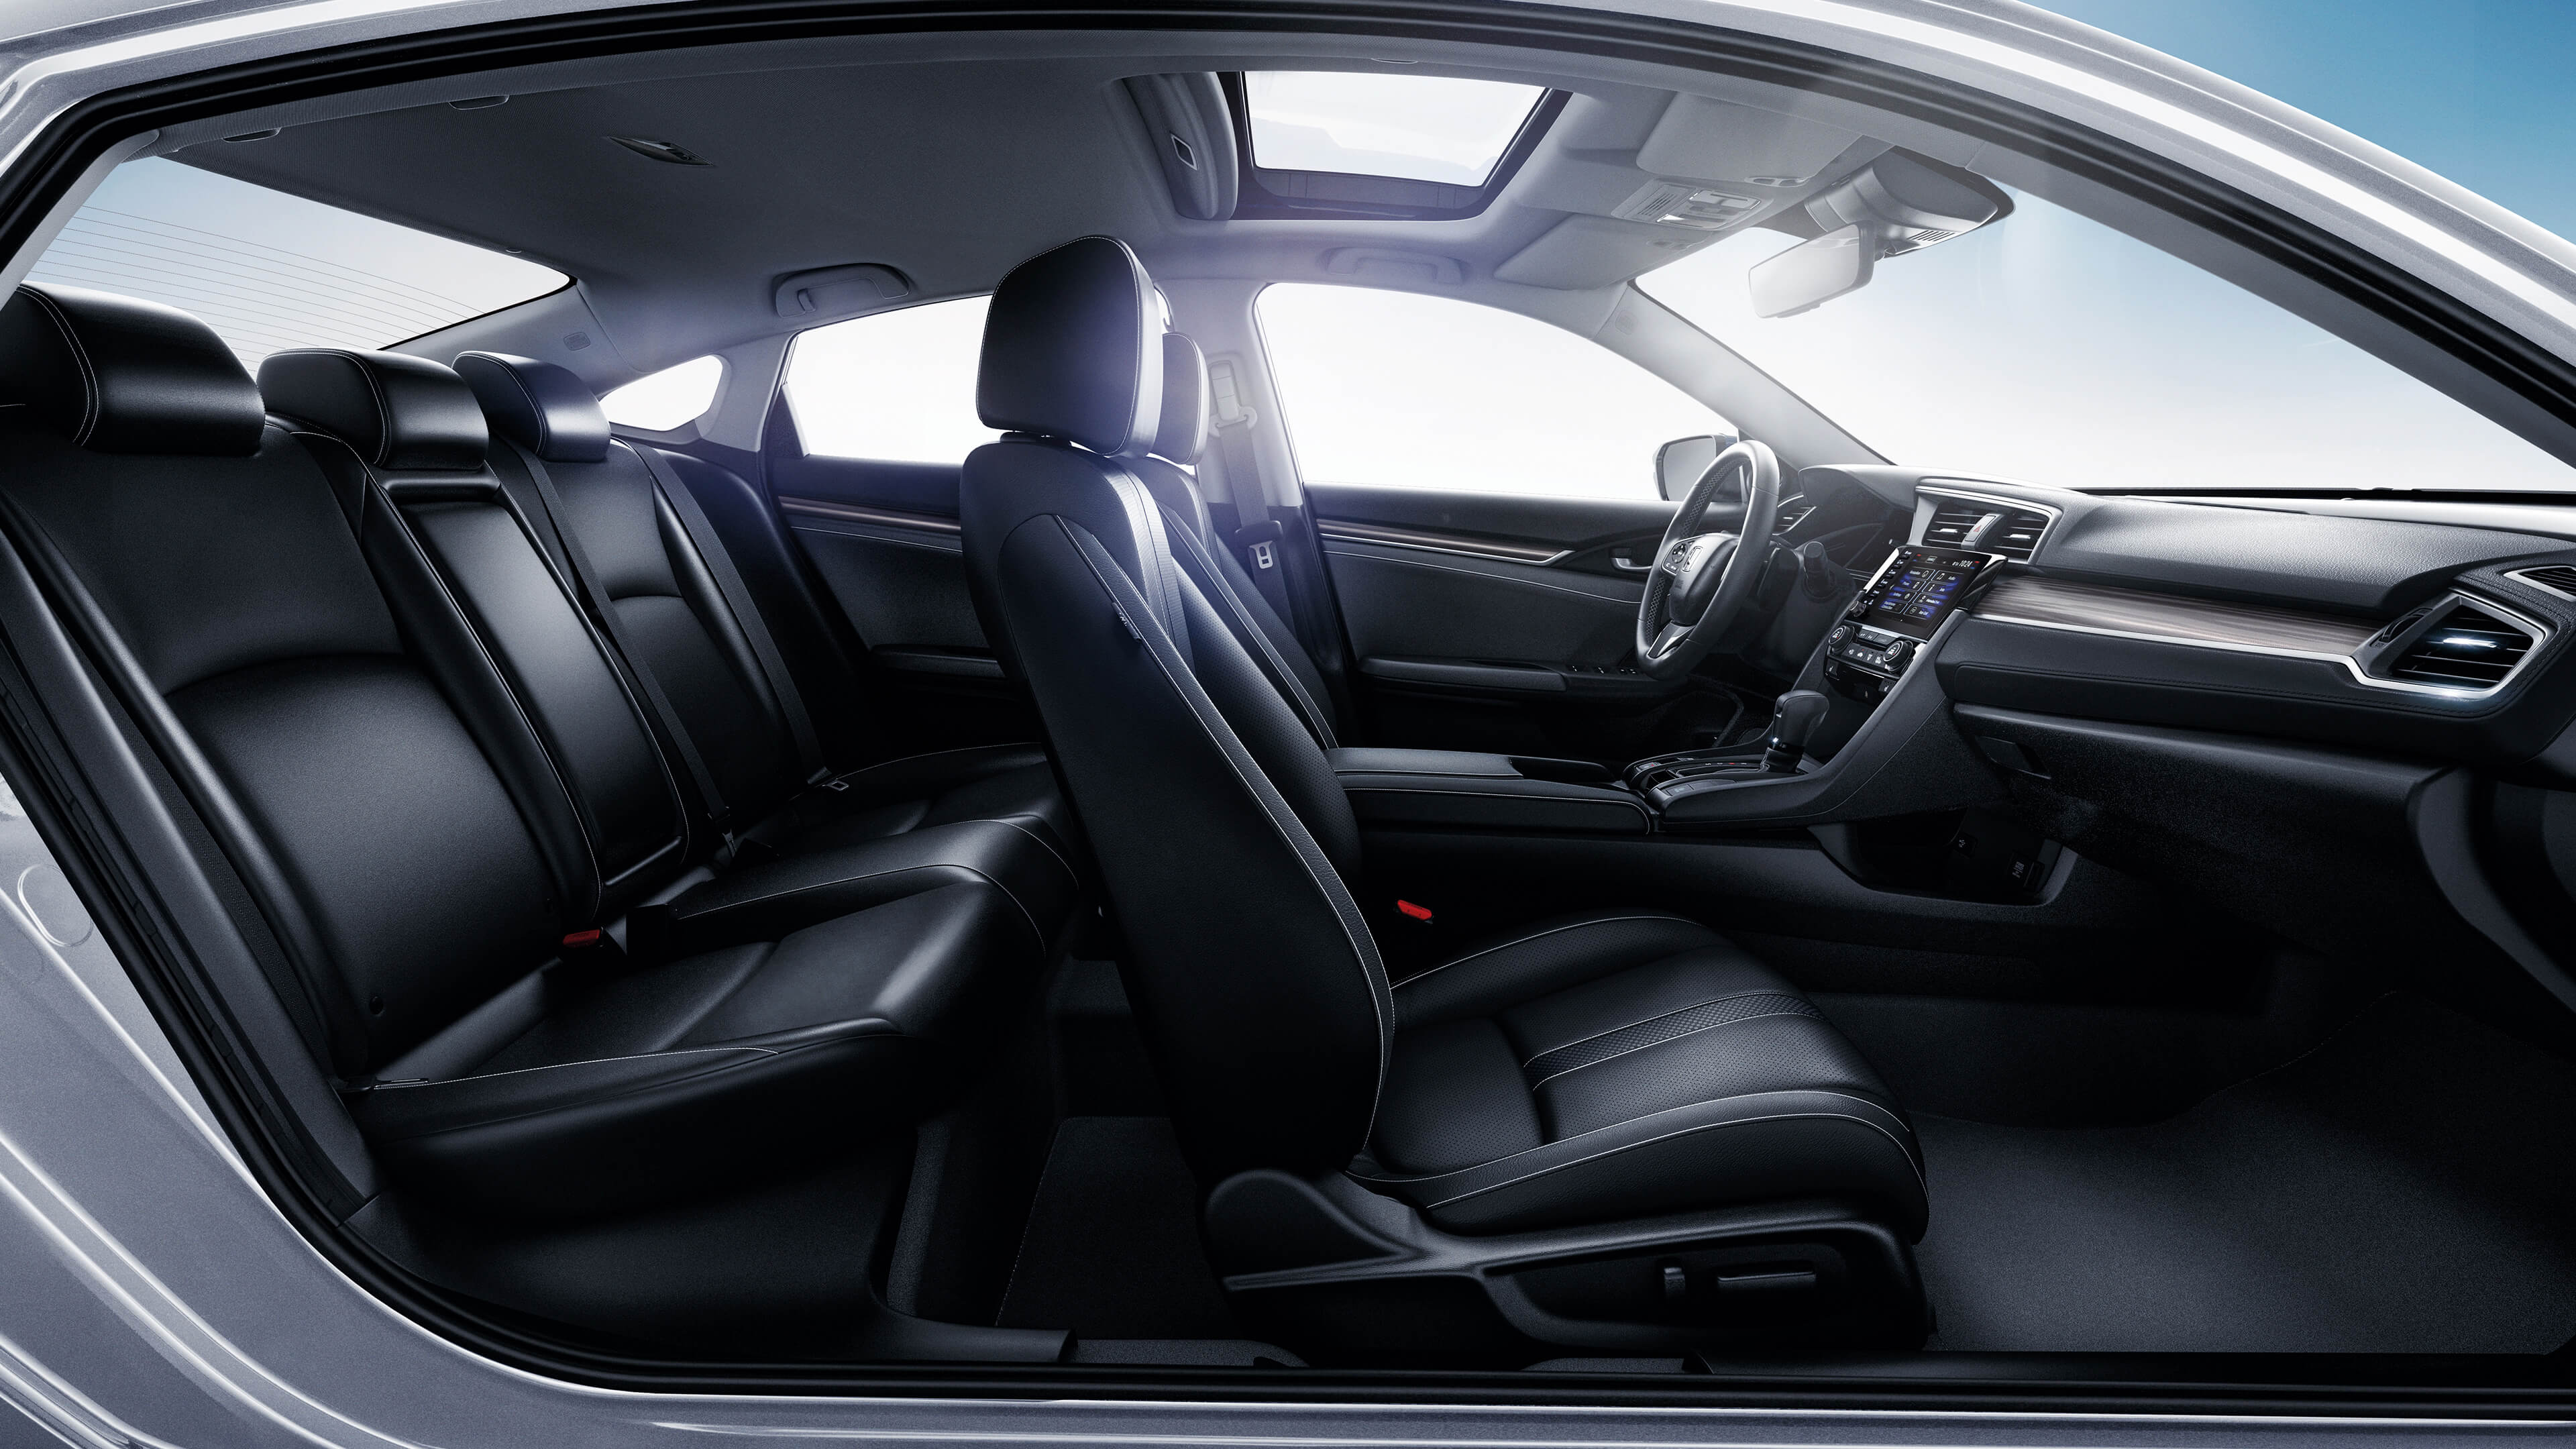 2019 Honda Civic Interior at Richmond Hill Honda in Toronto and the GTA